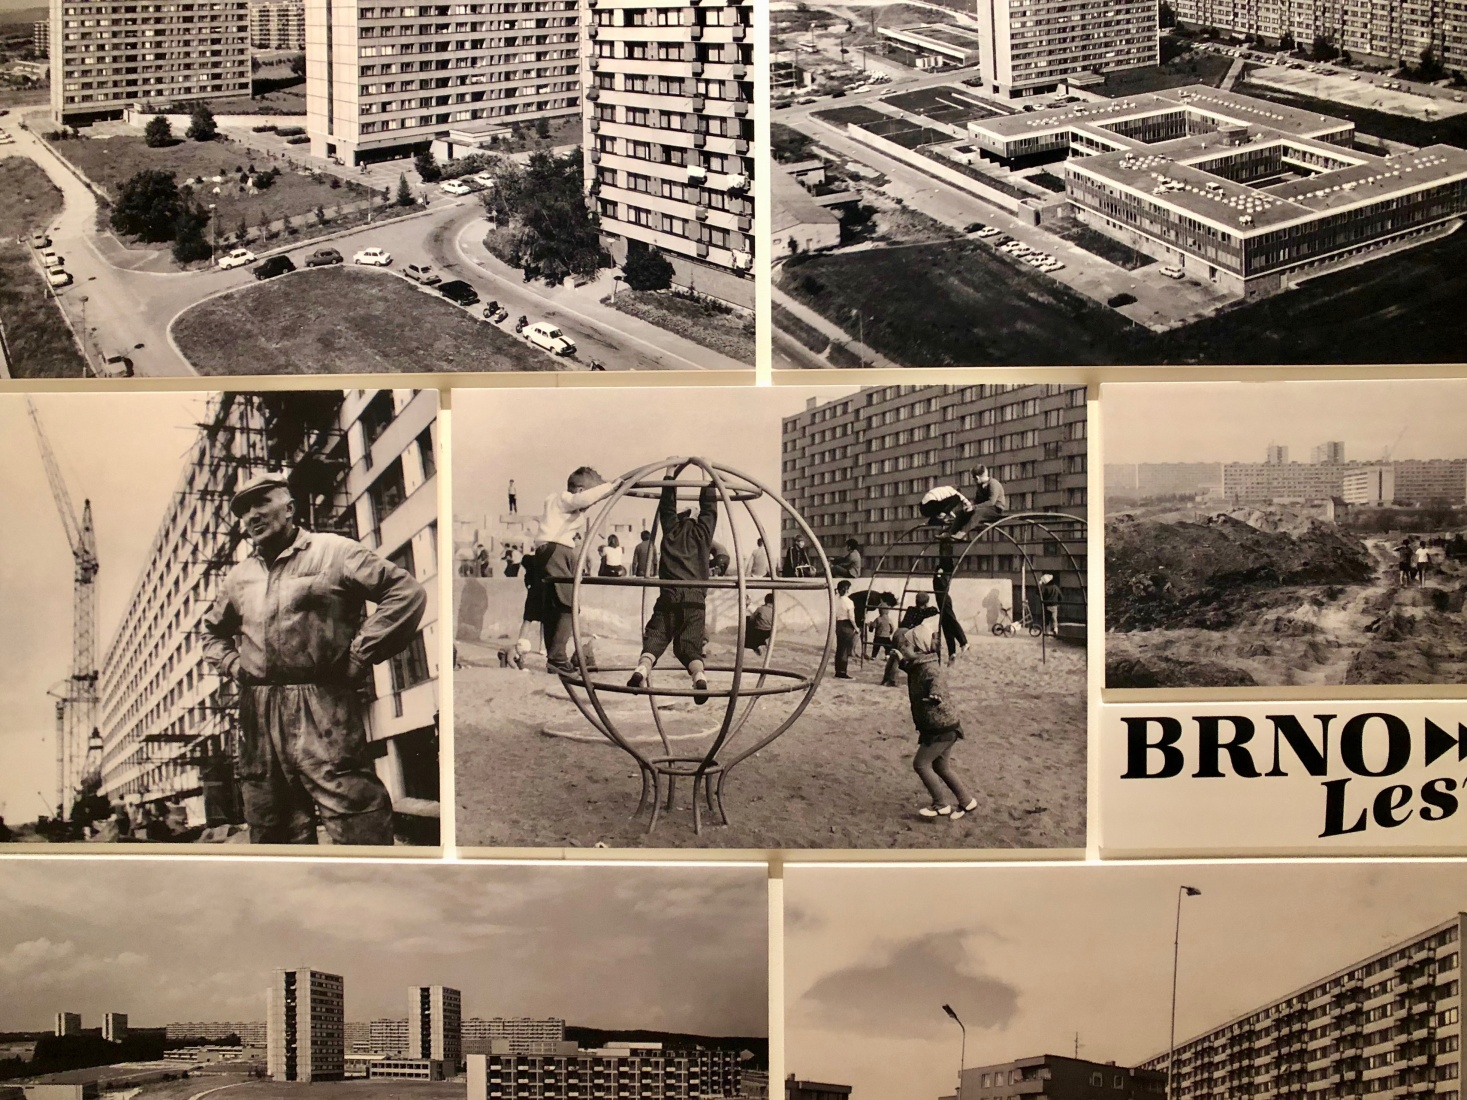 Photos of the work of Sídliště Brno-Lesná (1962-70), the first large Socialist-era housing project to be built in the city of Brno and features prominently in the Museum of Decorative Arts' exhibition on postwar, prefab housing.